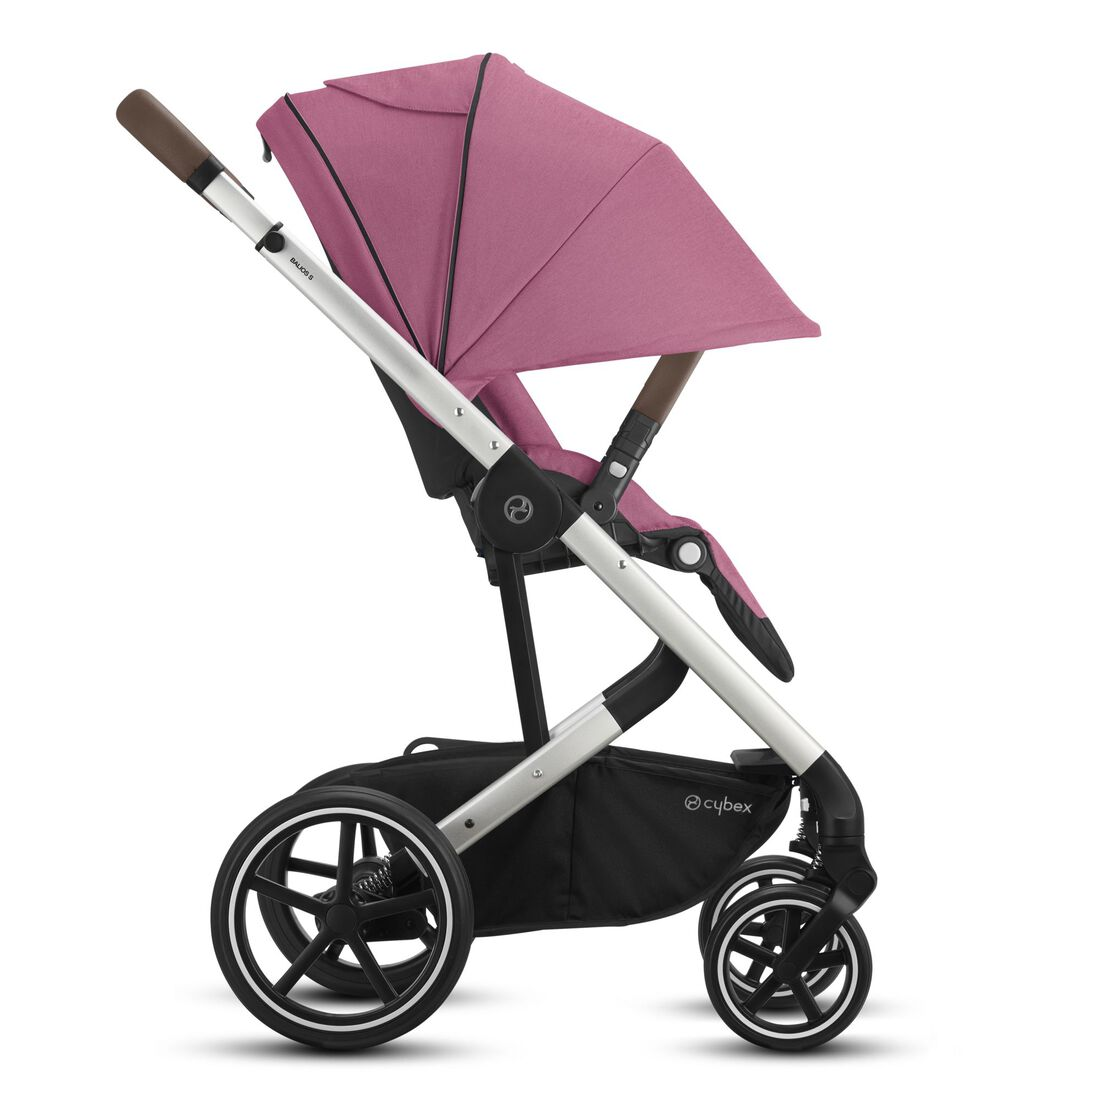 CYBEX Balios S Lux - Magnolia Pink (Silver Frame) in Magnolia Pink (Silver Frame) large image number 5